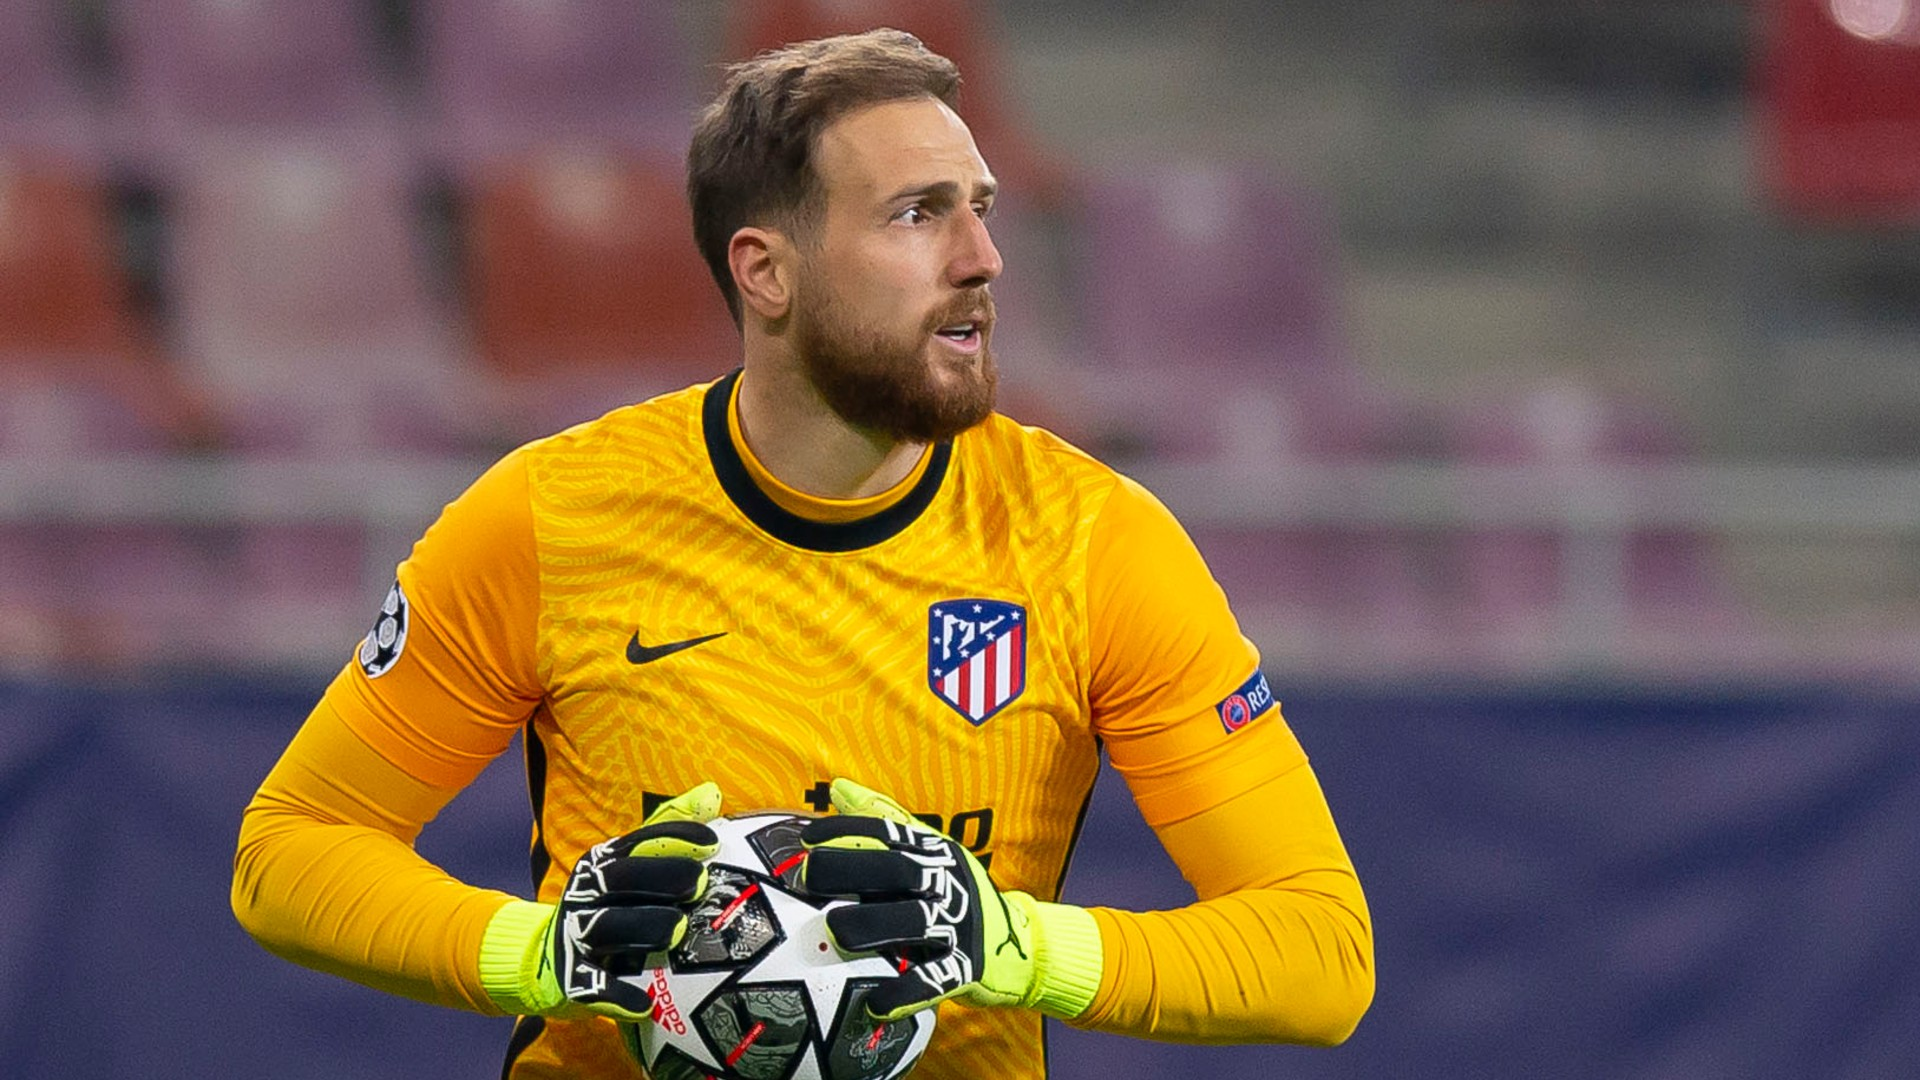 Atletico Madrid can still have a great season despite a slender first-leg Champions League loss to Chelsea, says Jan Oblak.